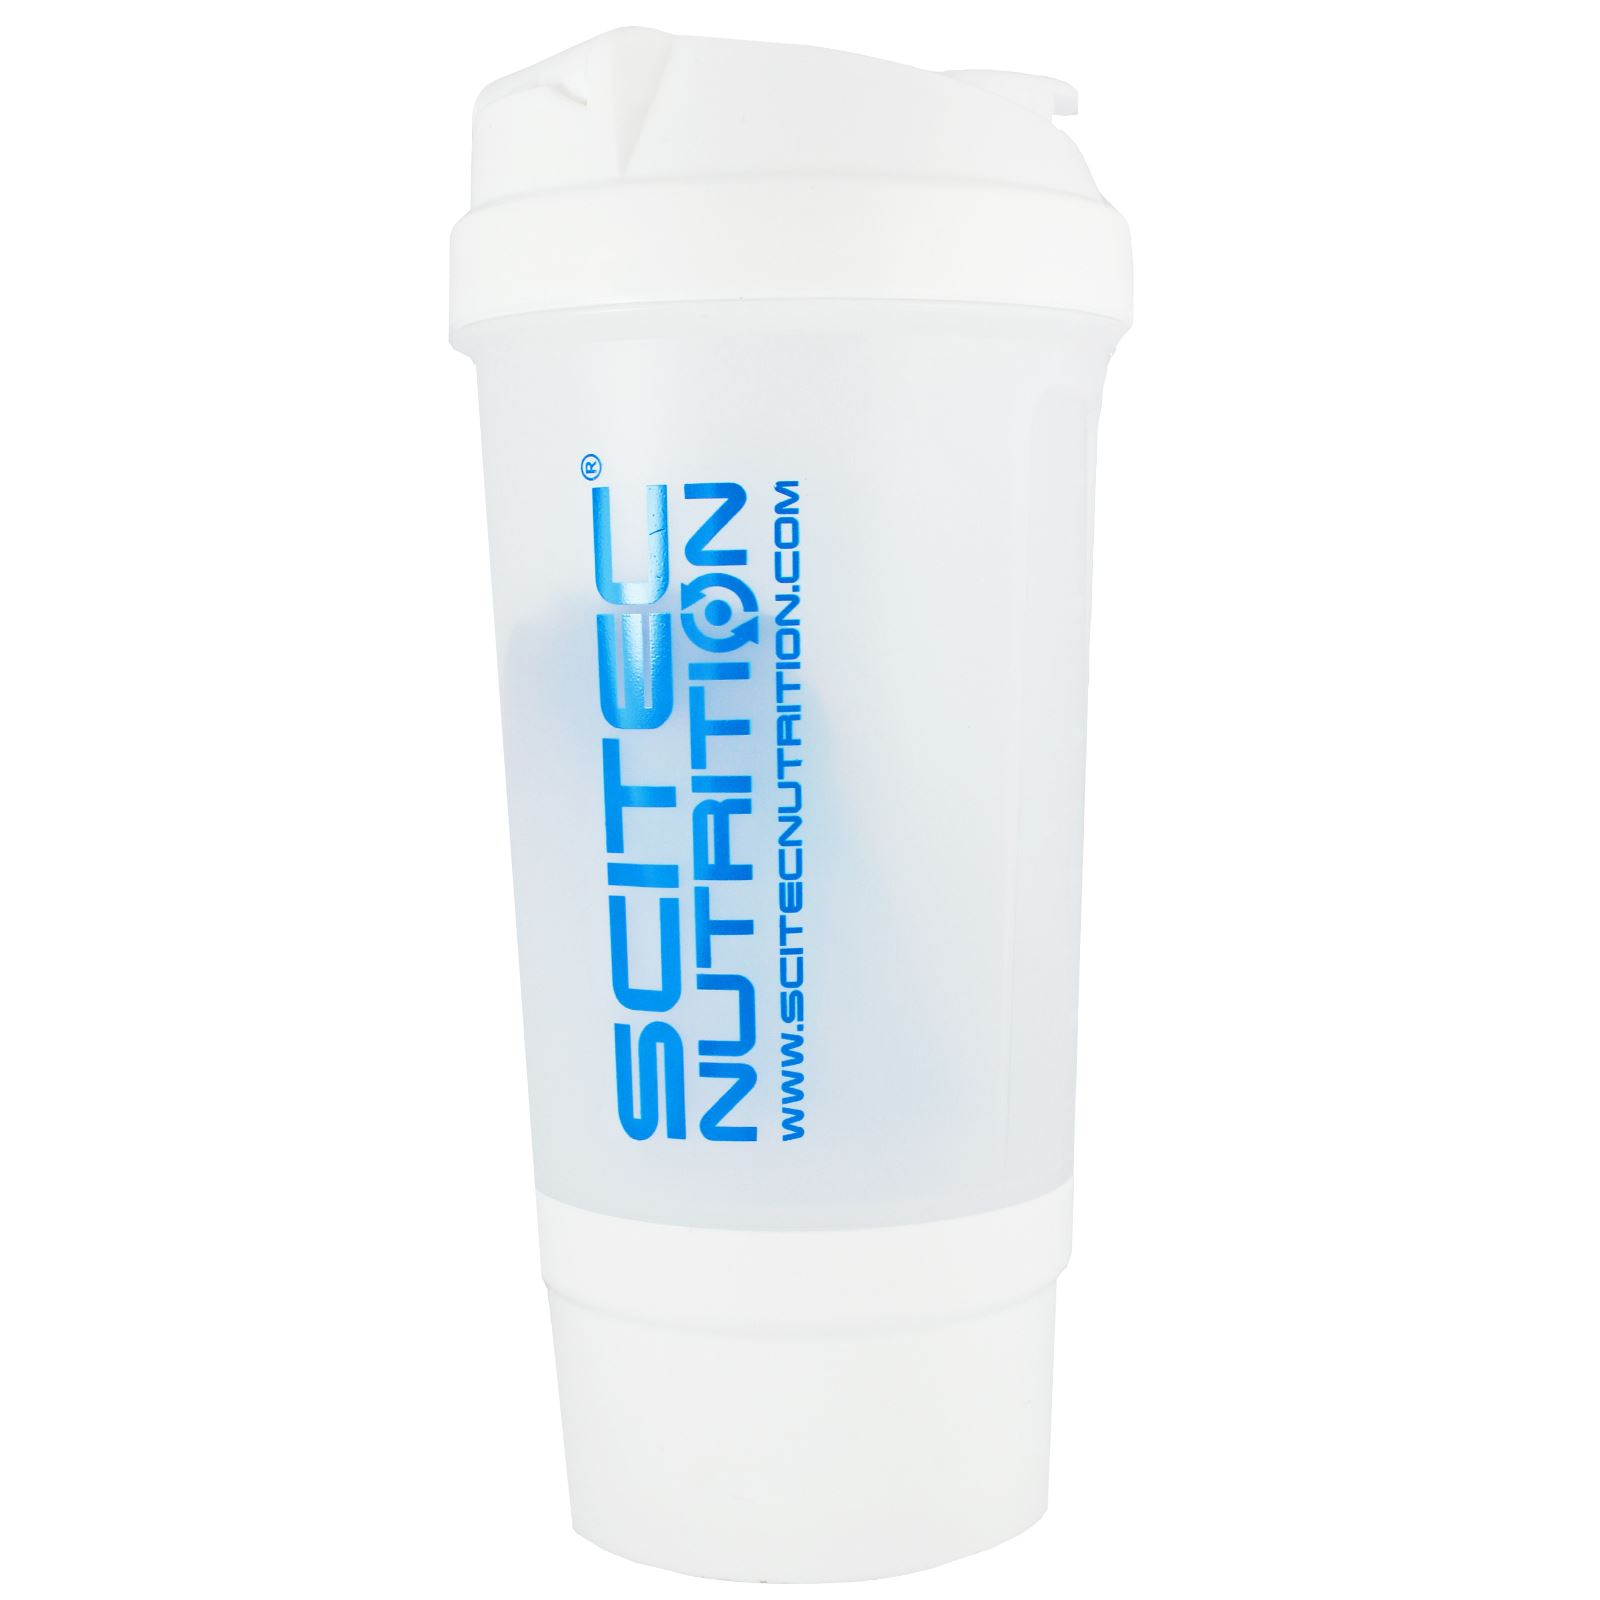 scitec nutrition protein shaker bottle 500ml shake mixer cup with compartment ebay. Black Bedroom Furniture Sets. Home Design Ideas